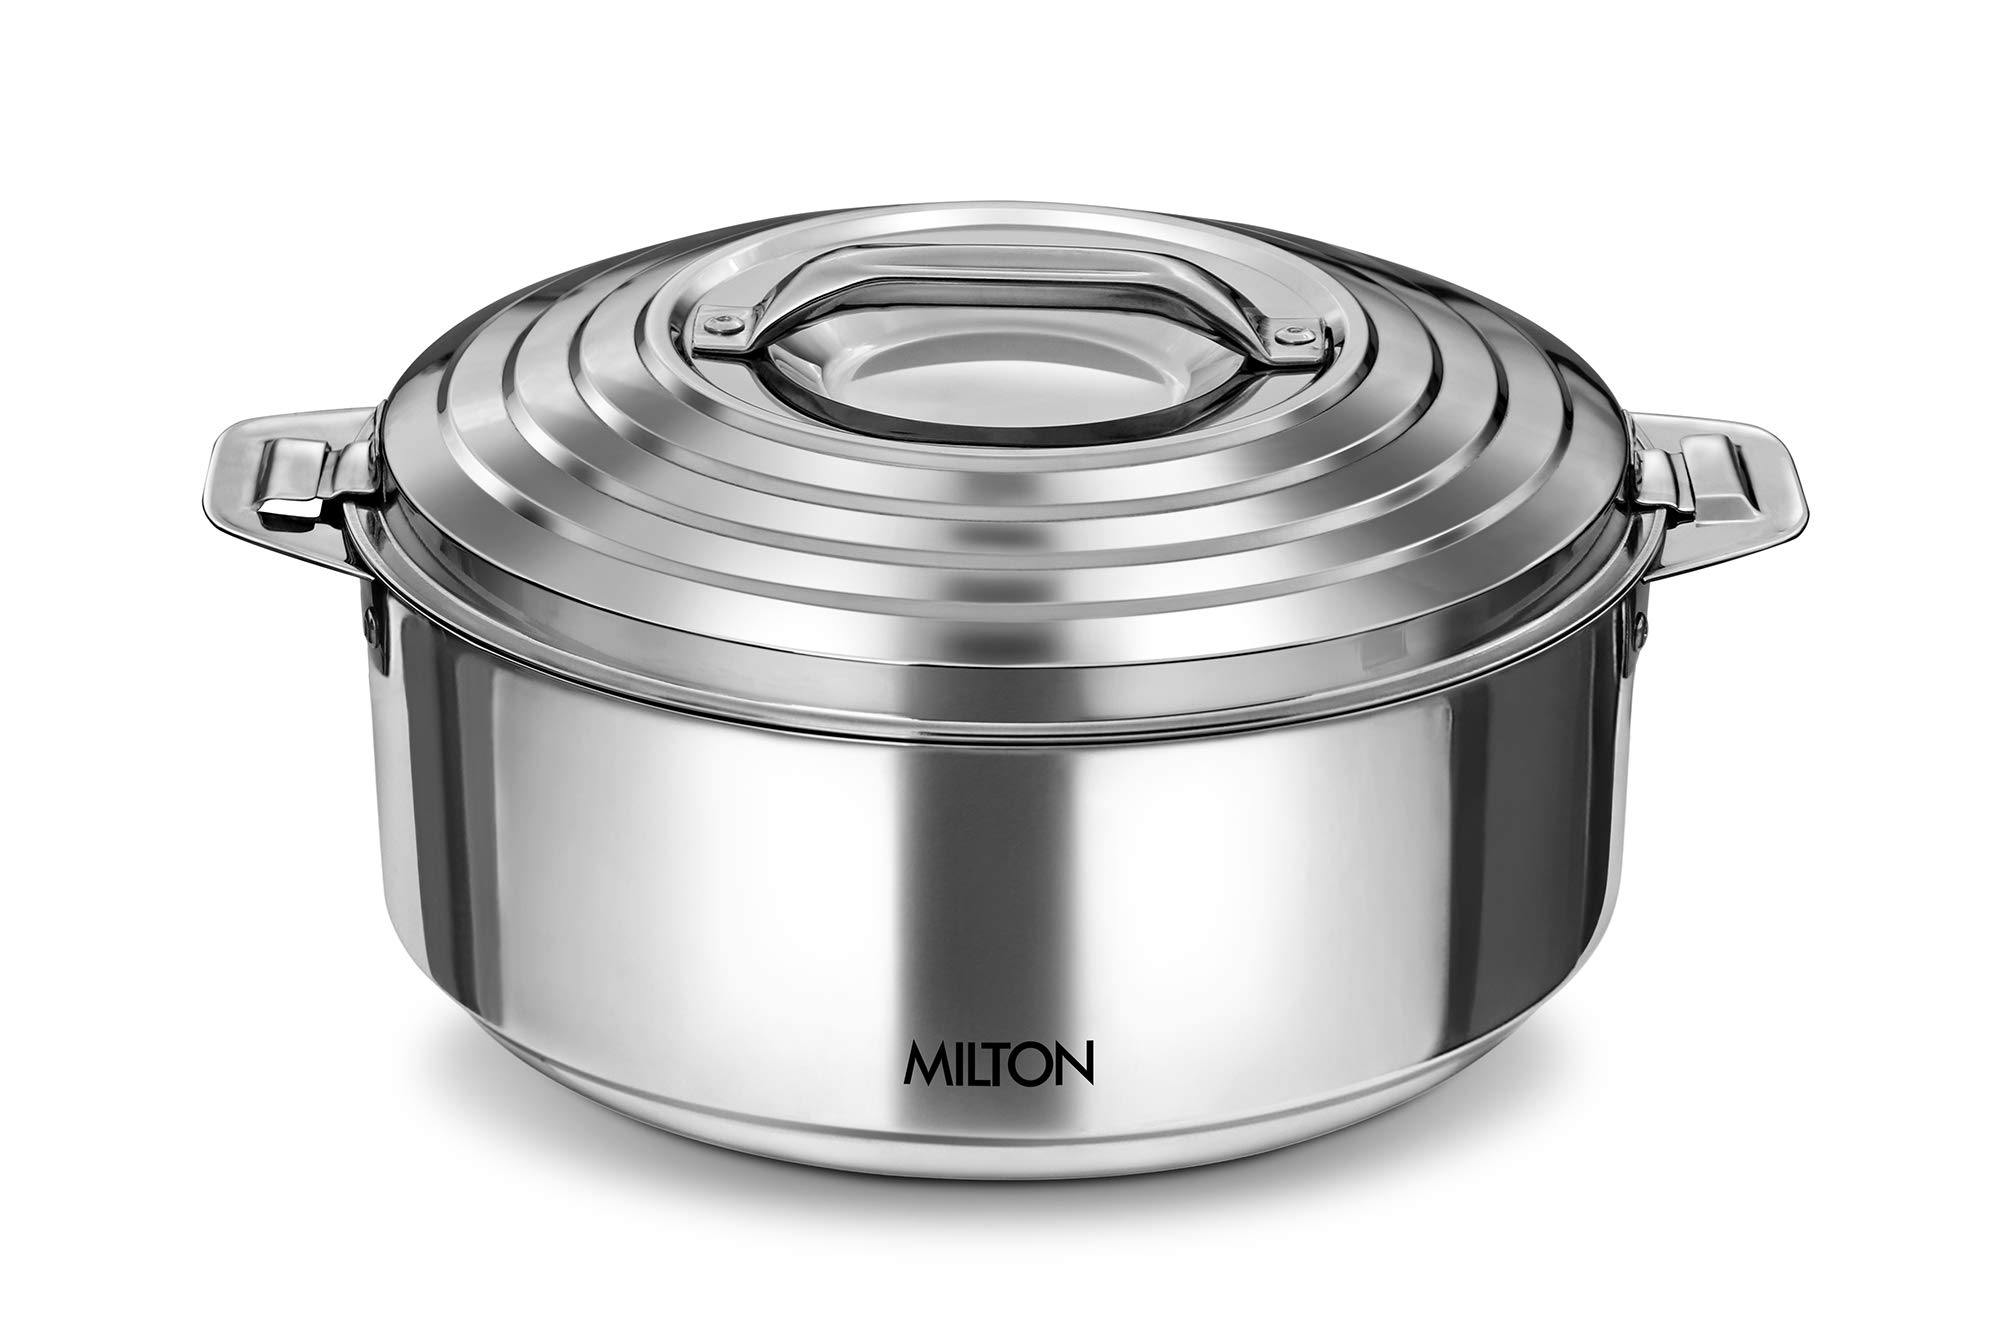 8. Milton Galaxia Stainless Steel Casserole, 2.5 litres, Silver